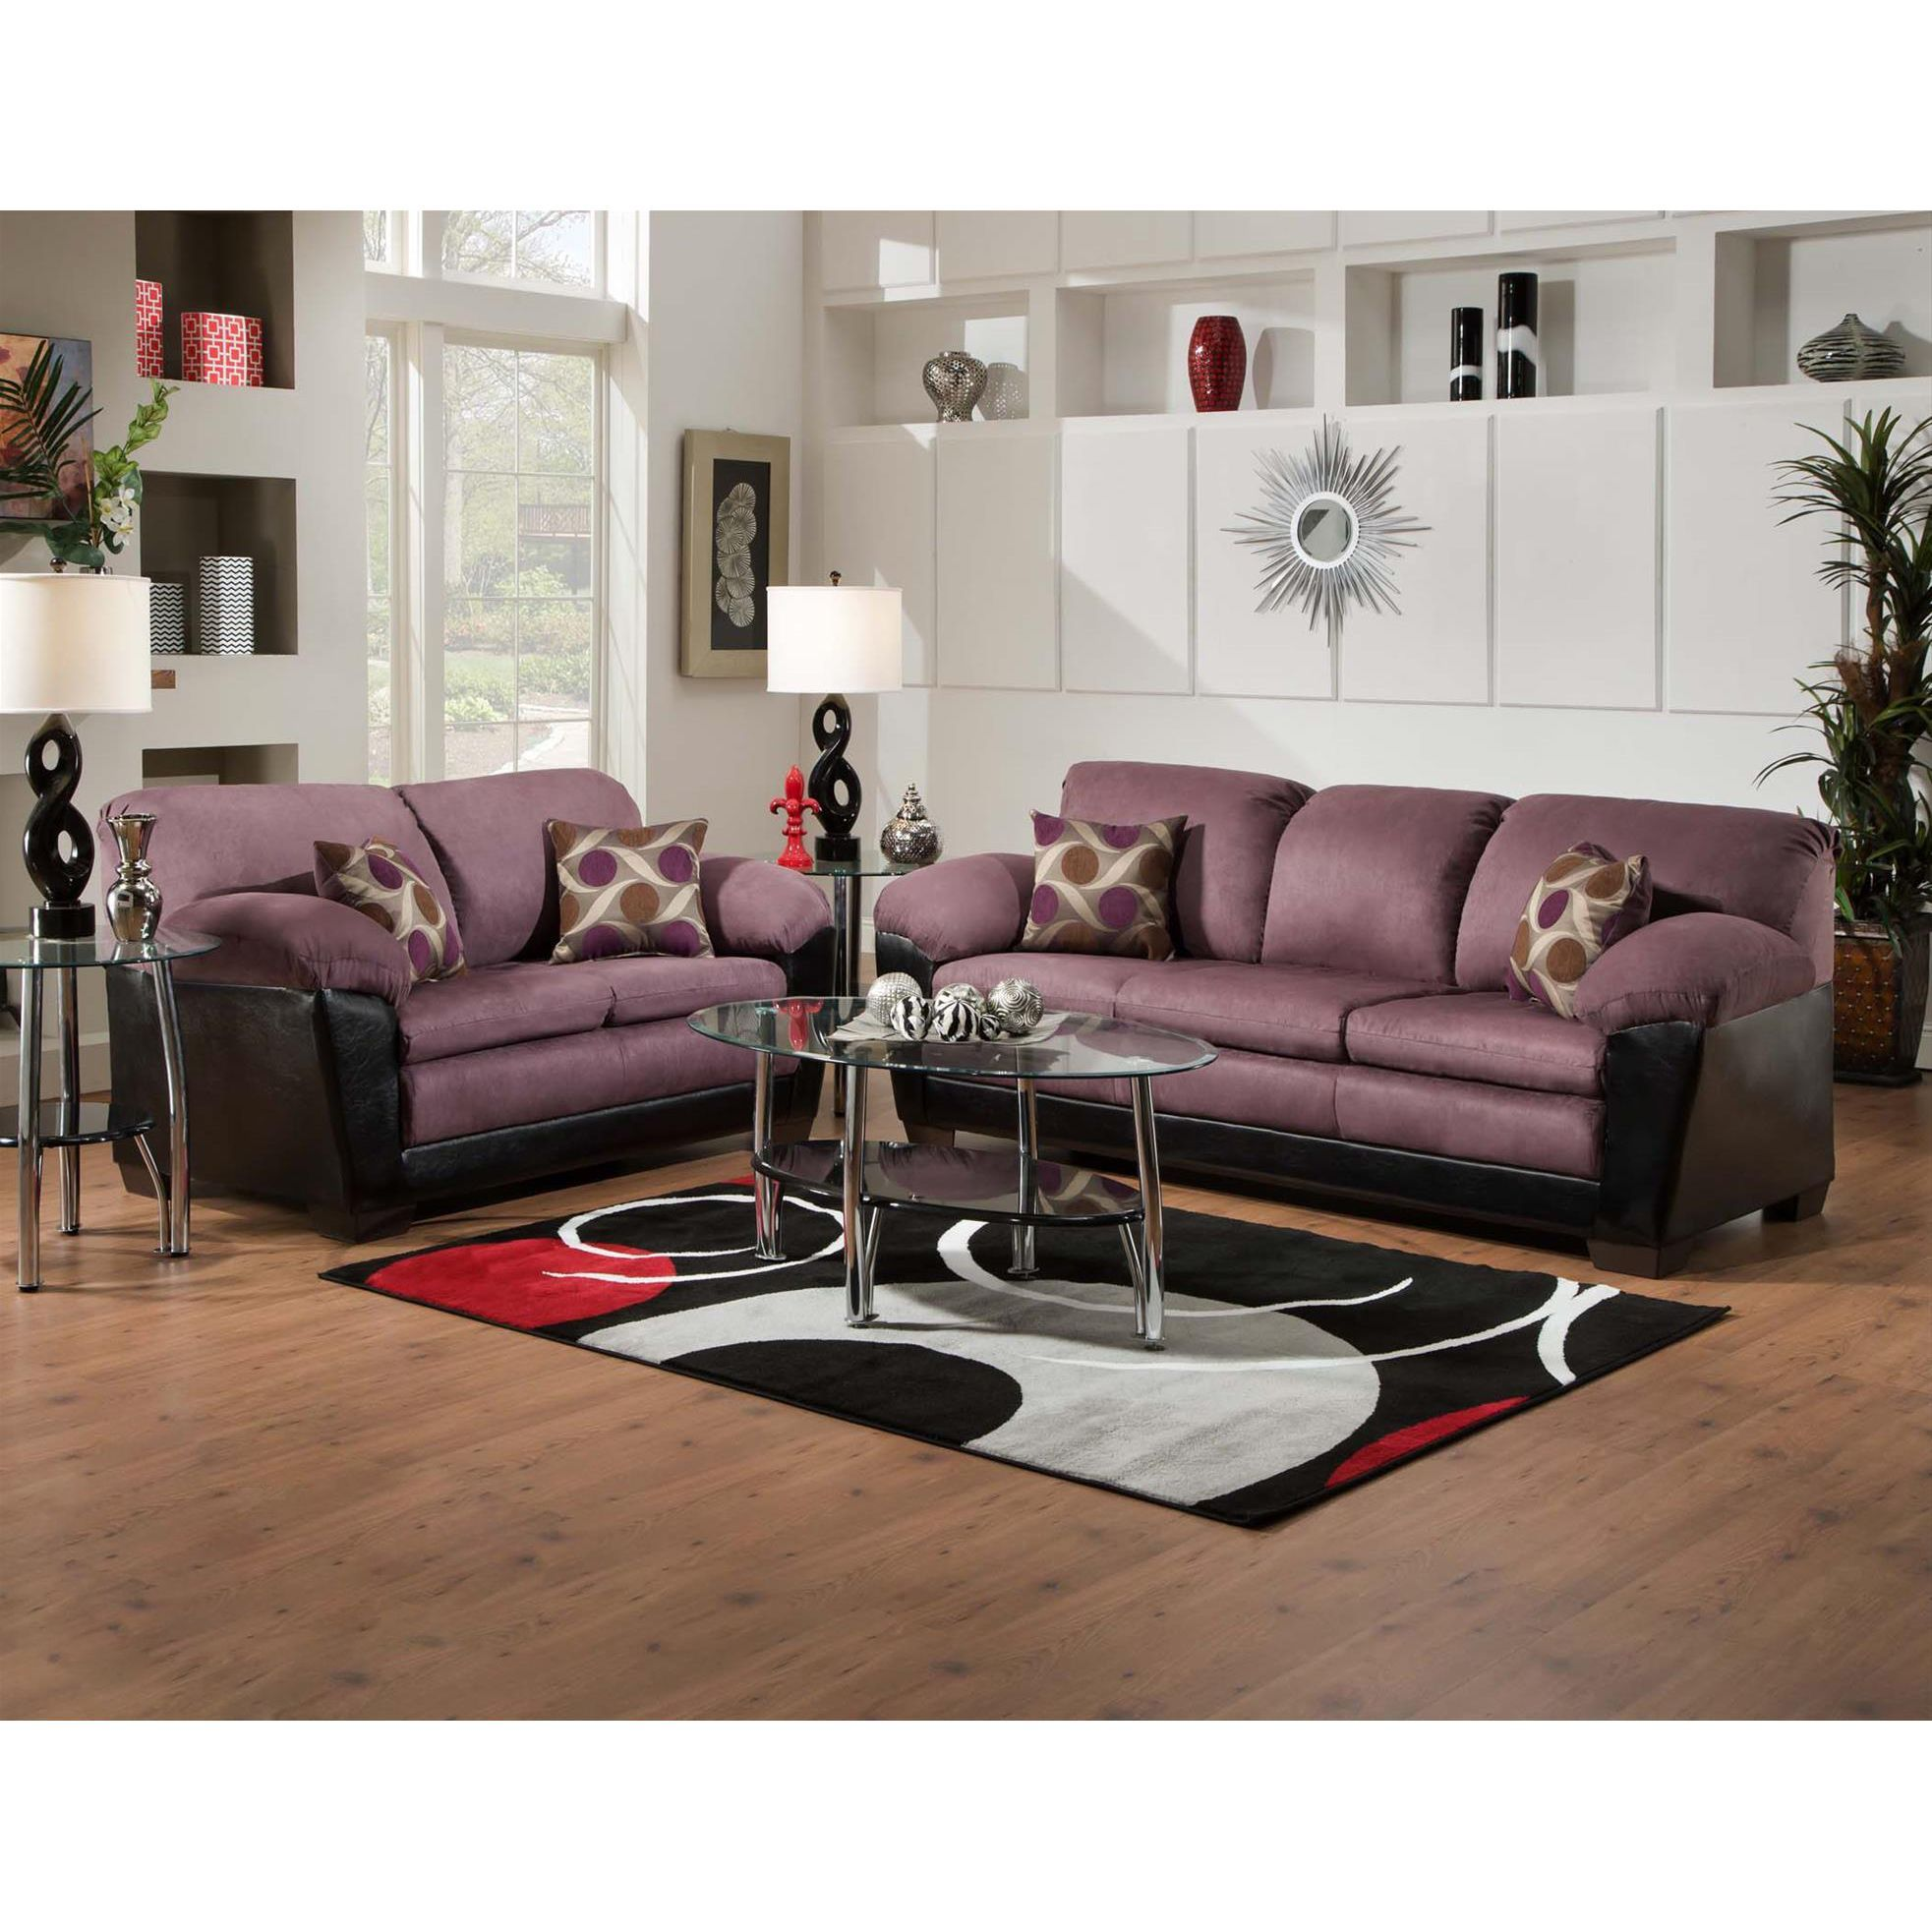 Impress Your Guests With The Comfort And Style Of This